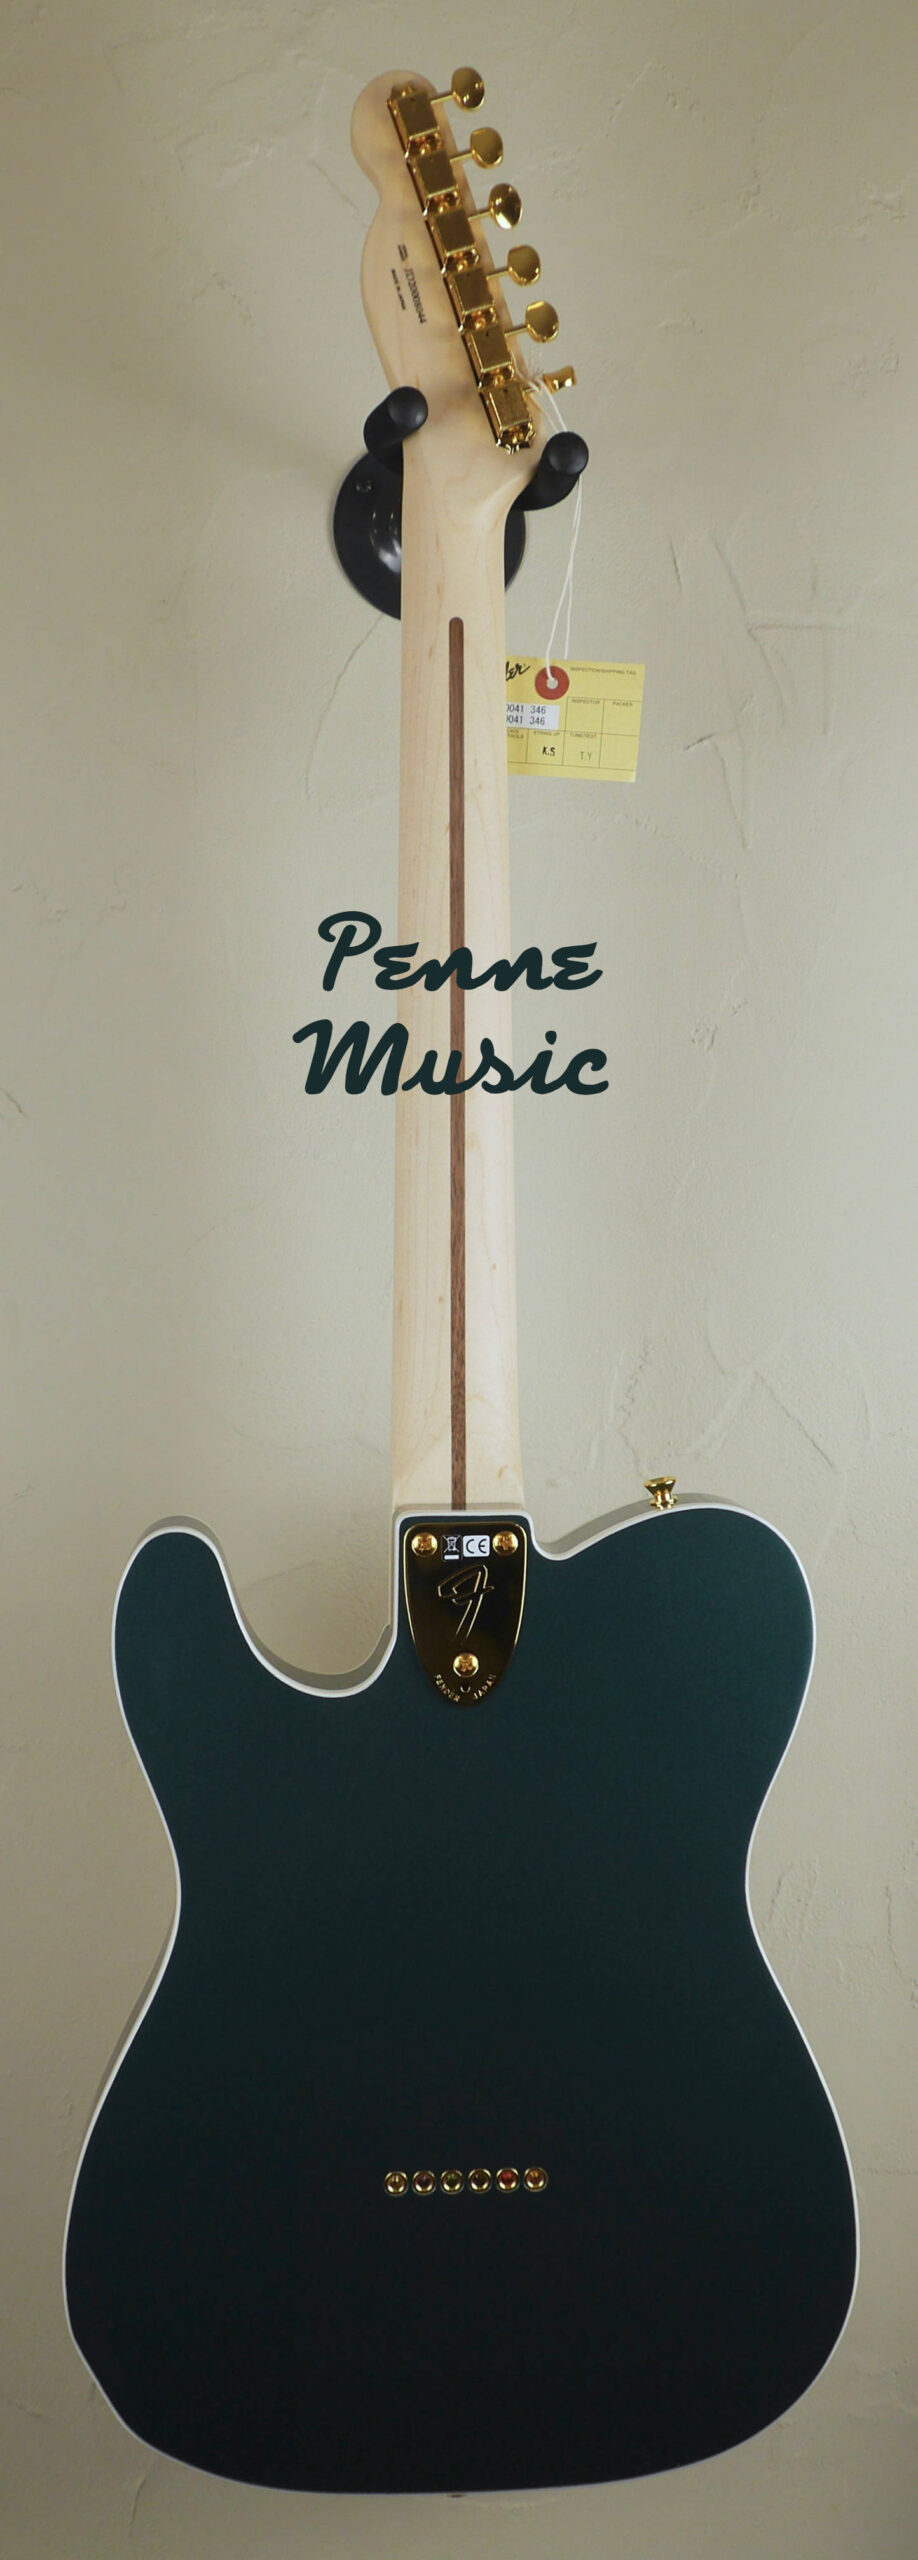 Fender Super Deluxe Thinline Telecaster Limited Edition Sherwood Green Metallic 2